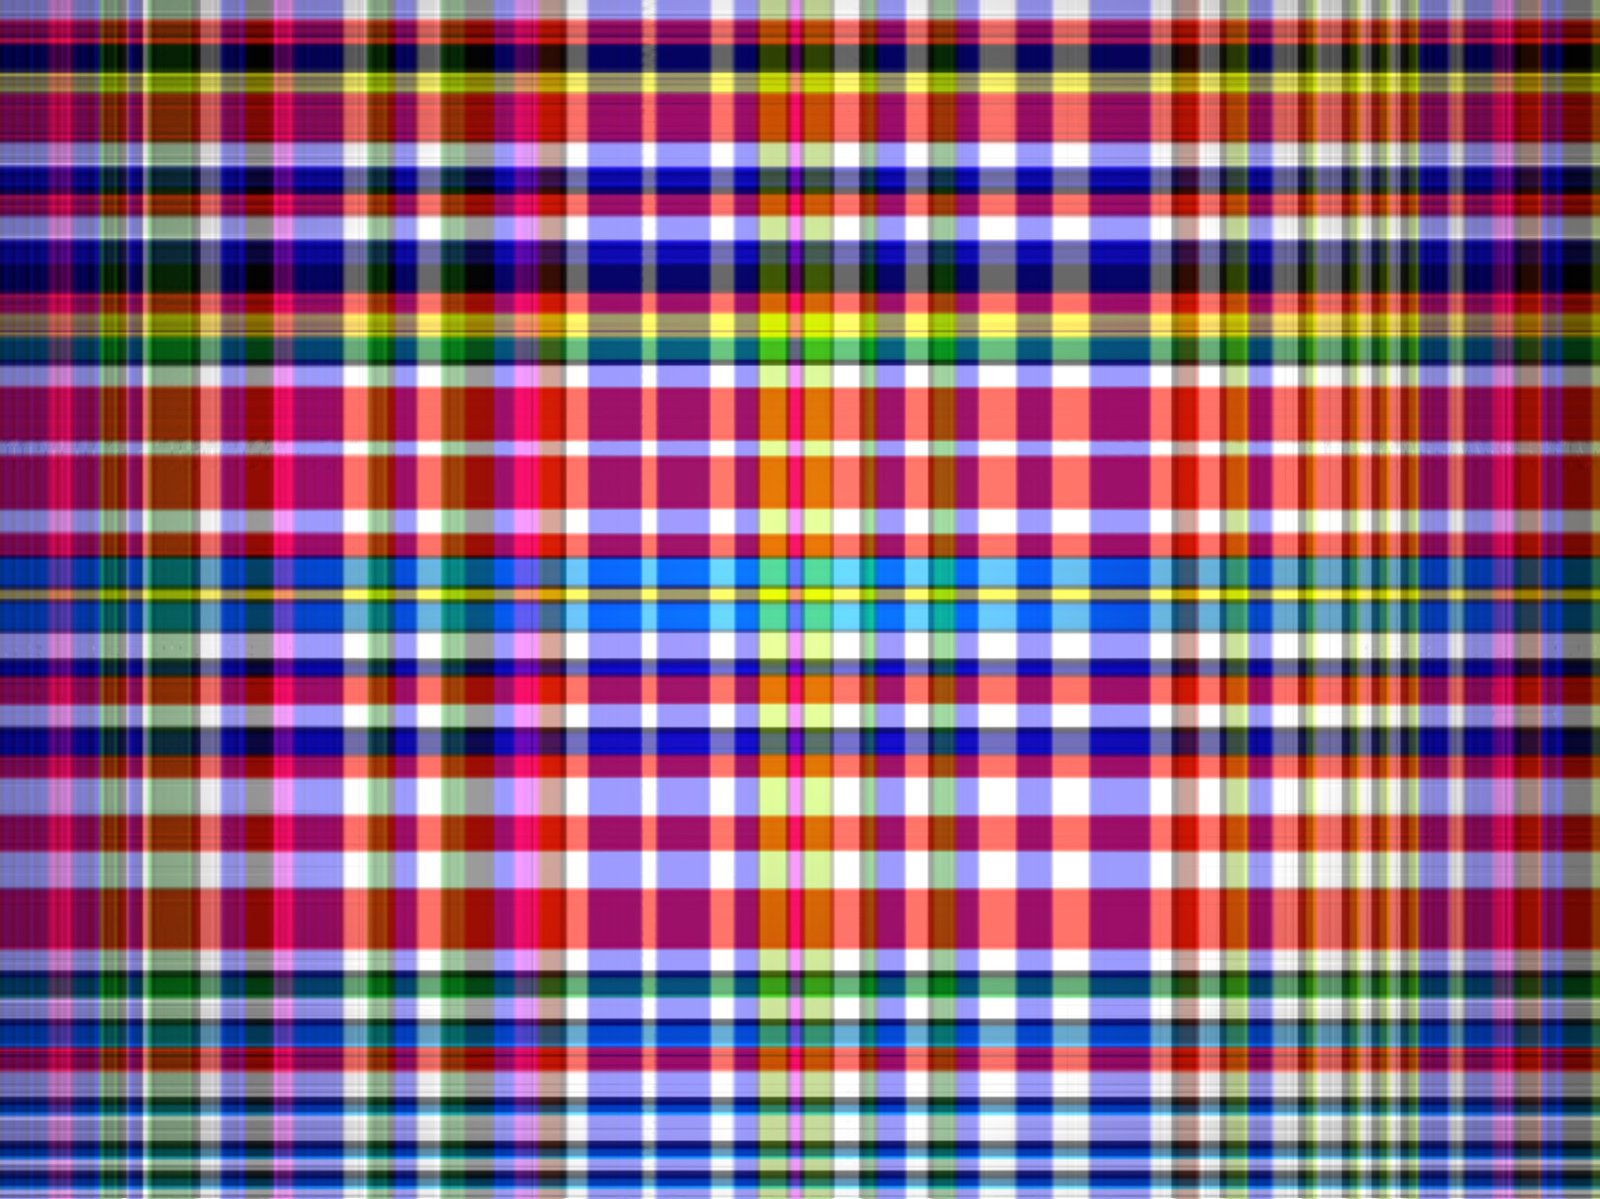 Free Color Check Pattern Stock Photo - FreeImages.com